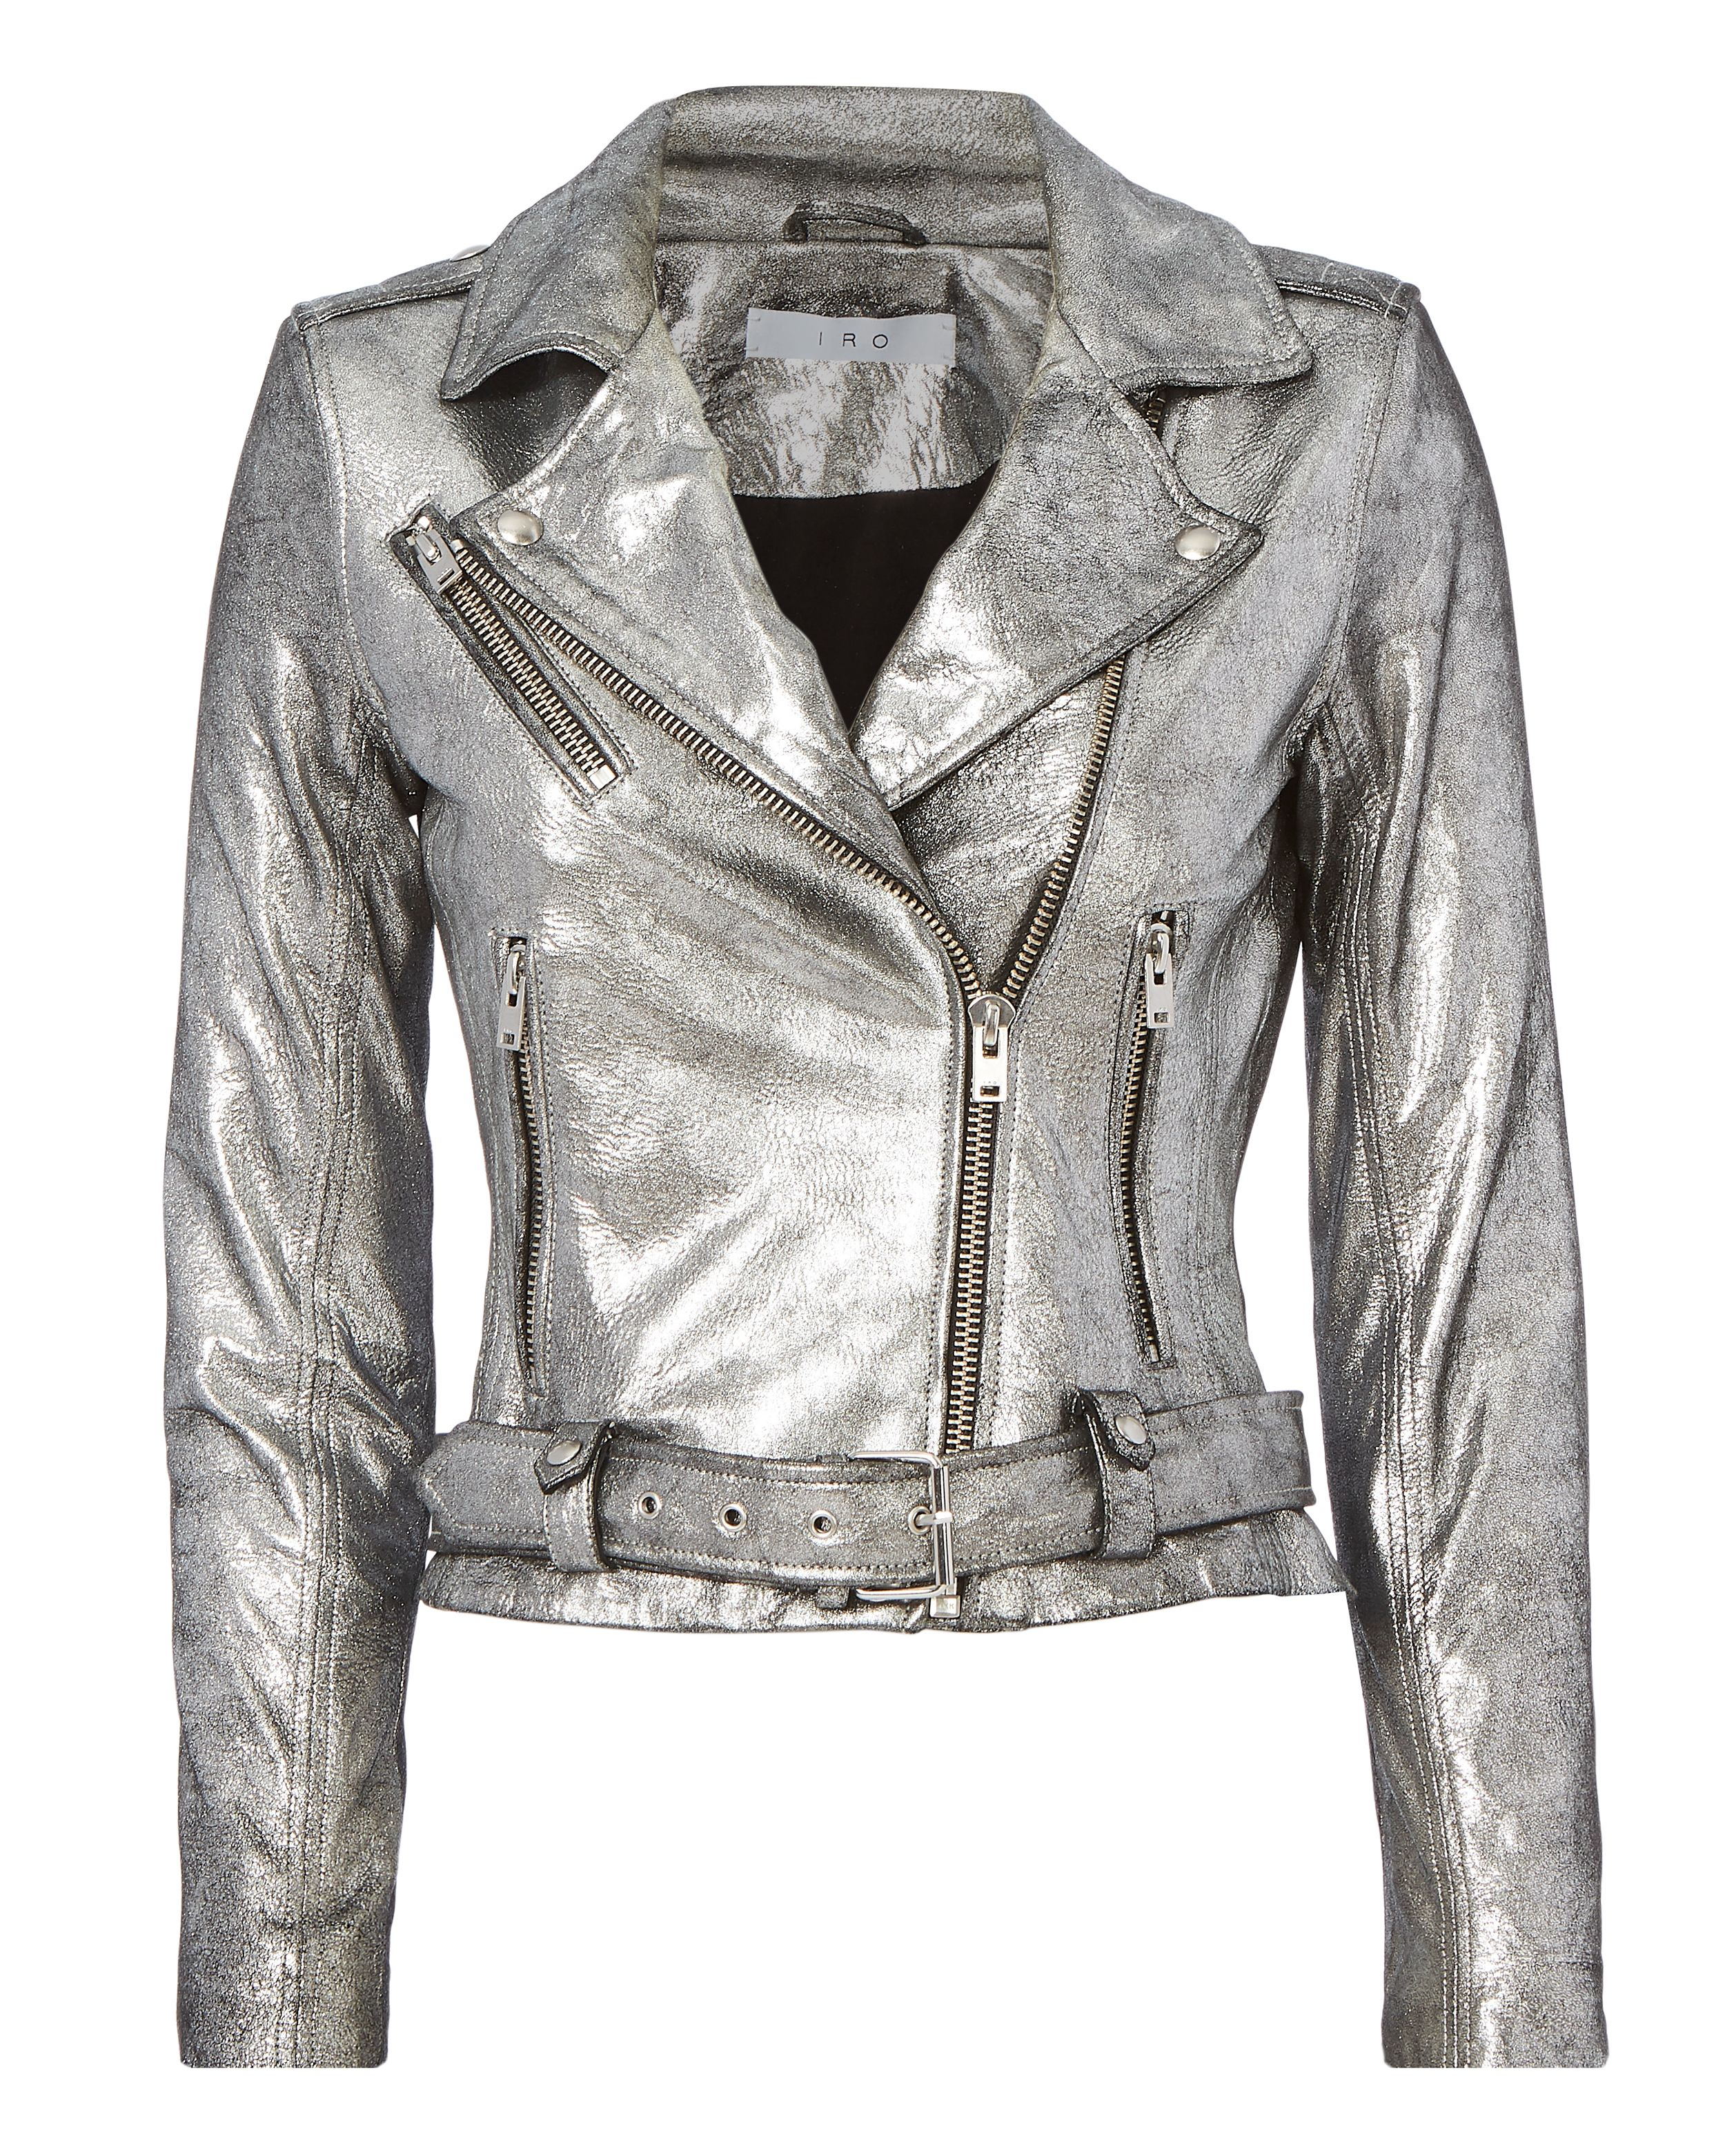 32bf7b0fe66 Iro Brooklyn Silver Leather Moto Jacket - for when you want to shine ...